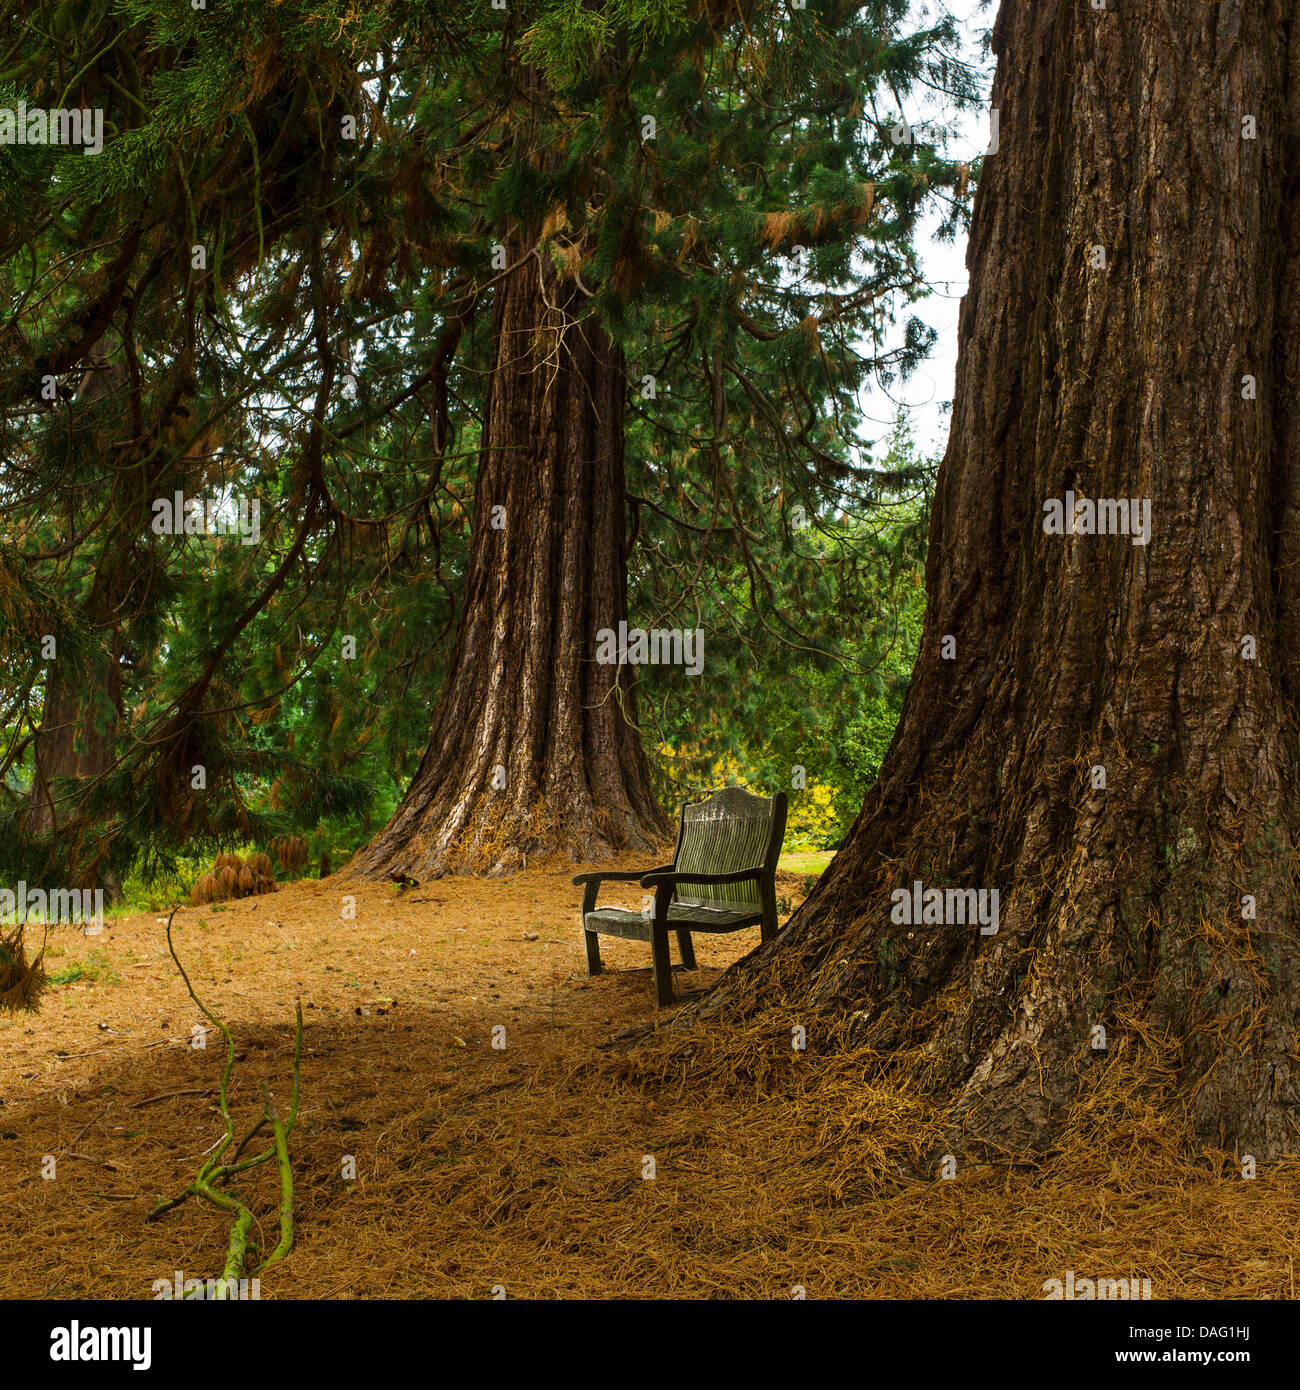 A bench beneath two Sequoia trees. - Stock Image